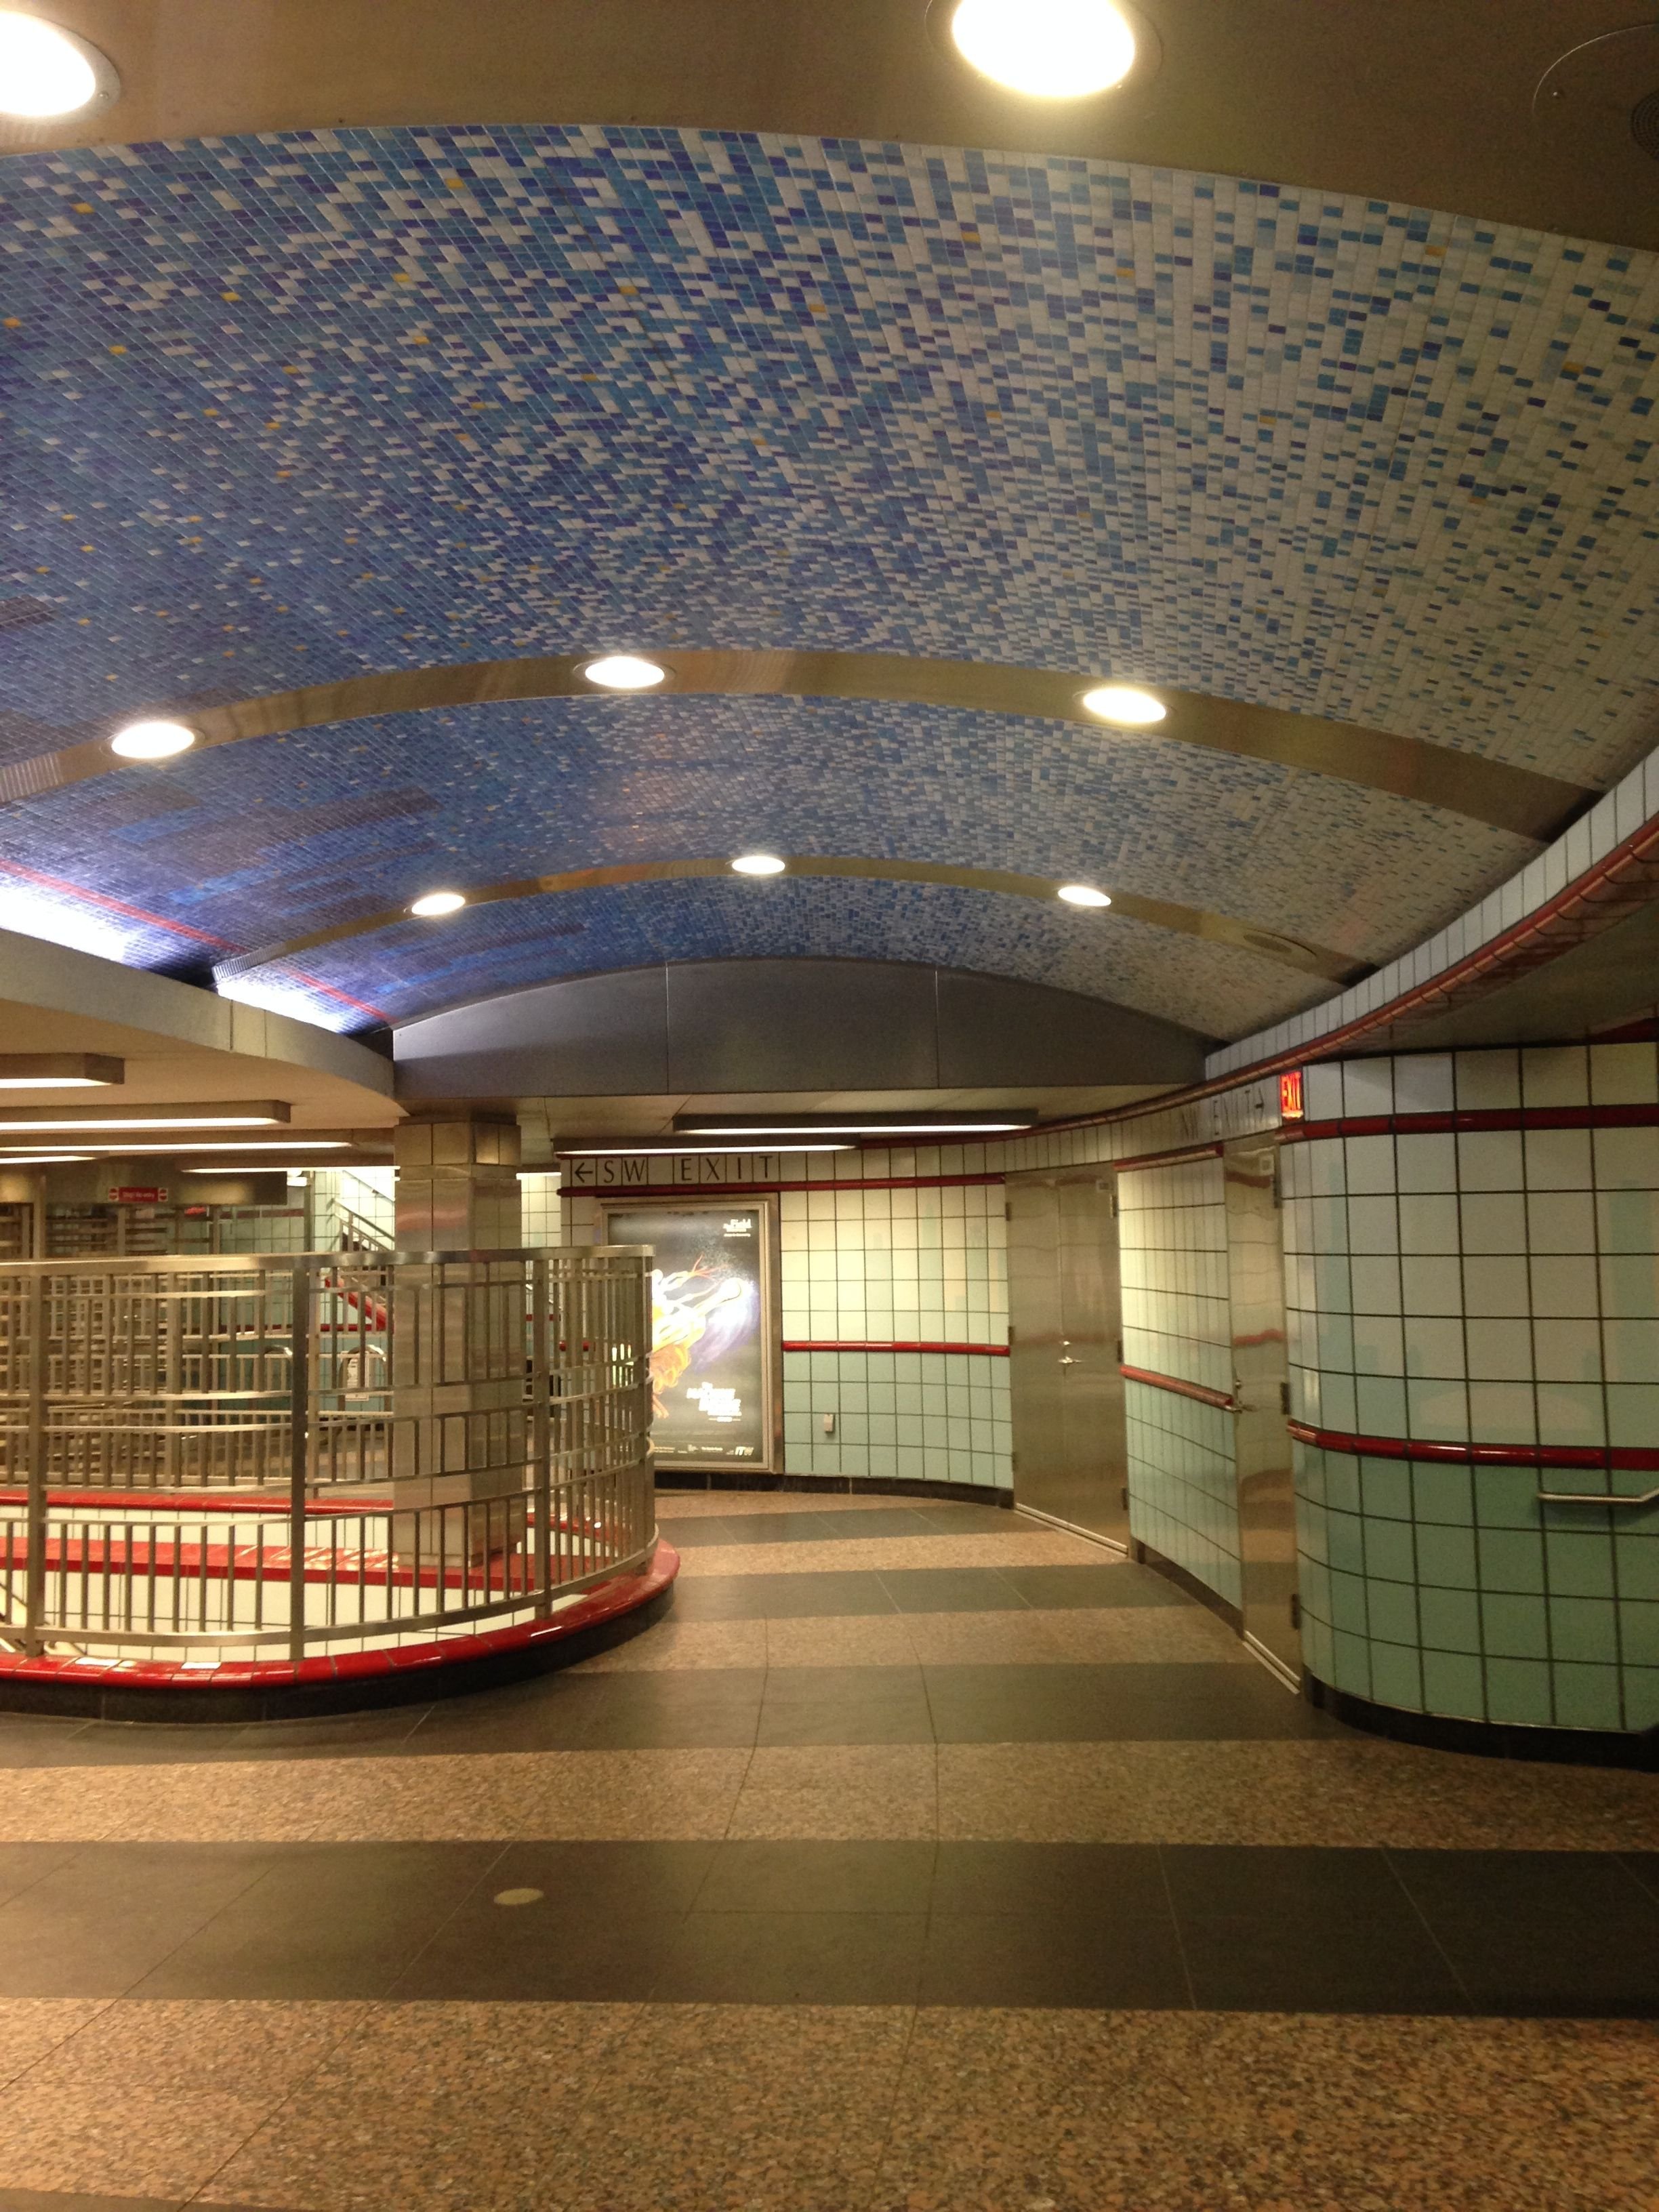 A cool subway station that has a vintage look about it.